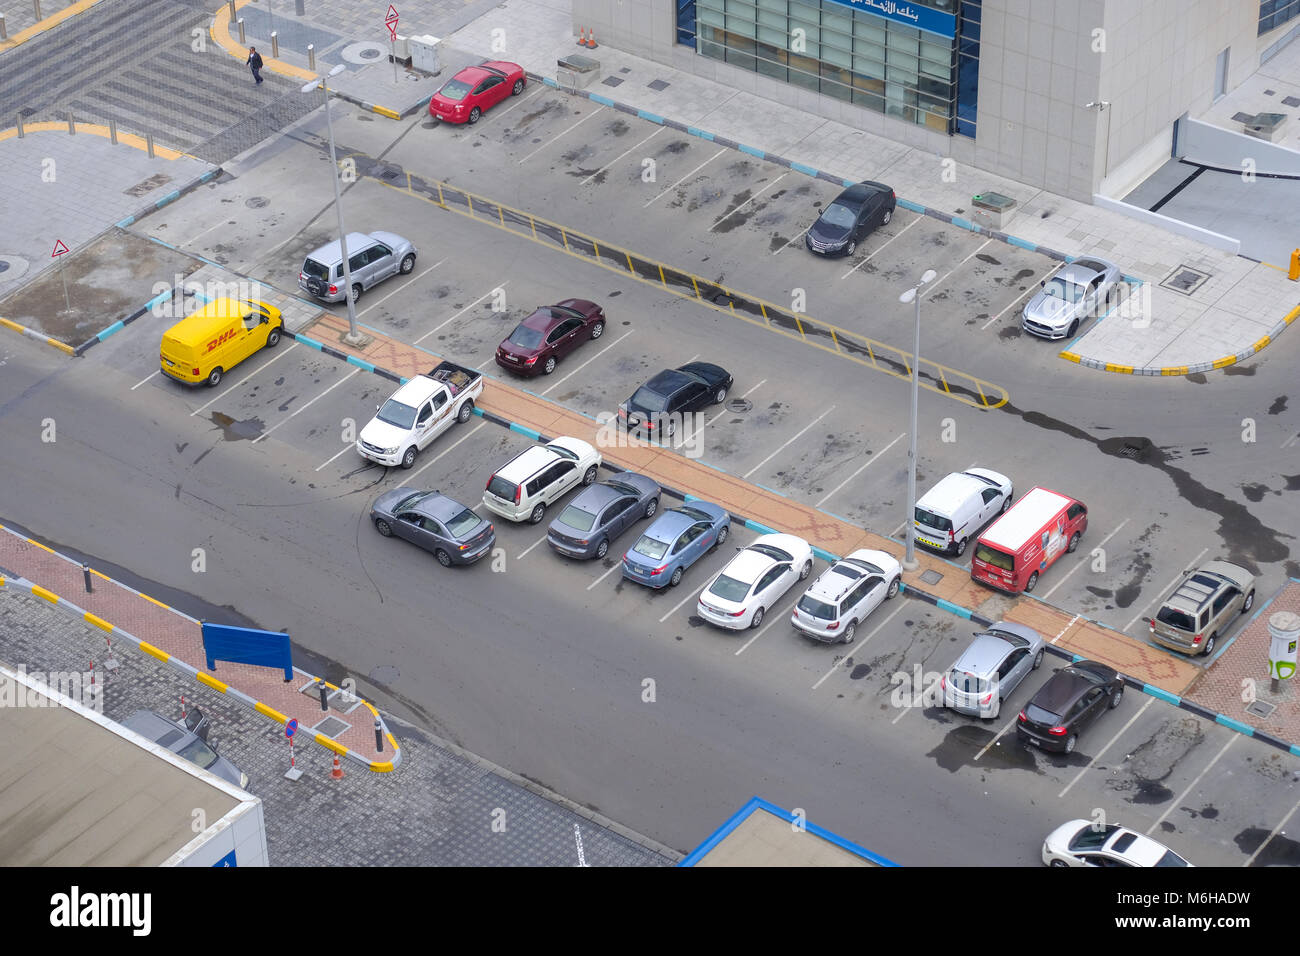 Top view / Ariel view of Parking Space and Parked vehicle - Stock Image